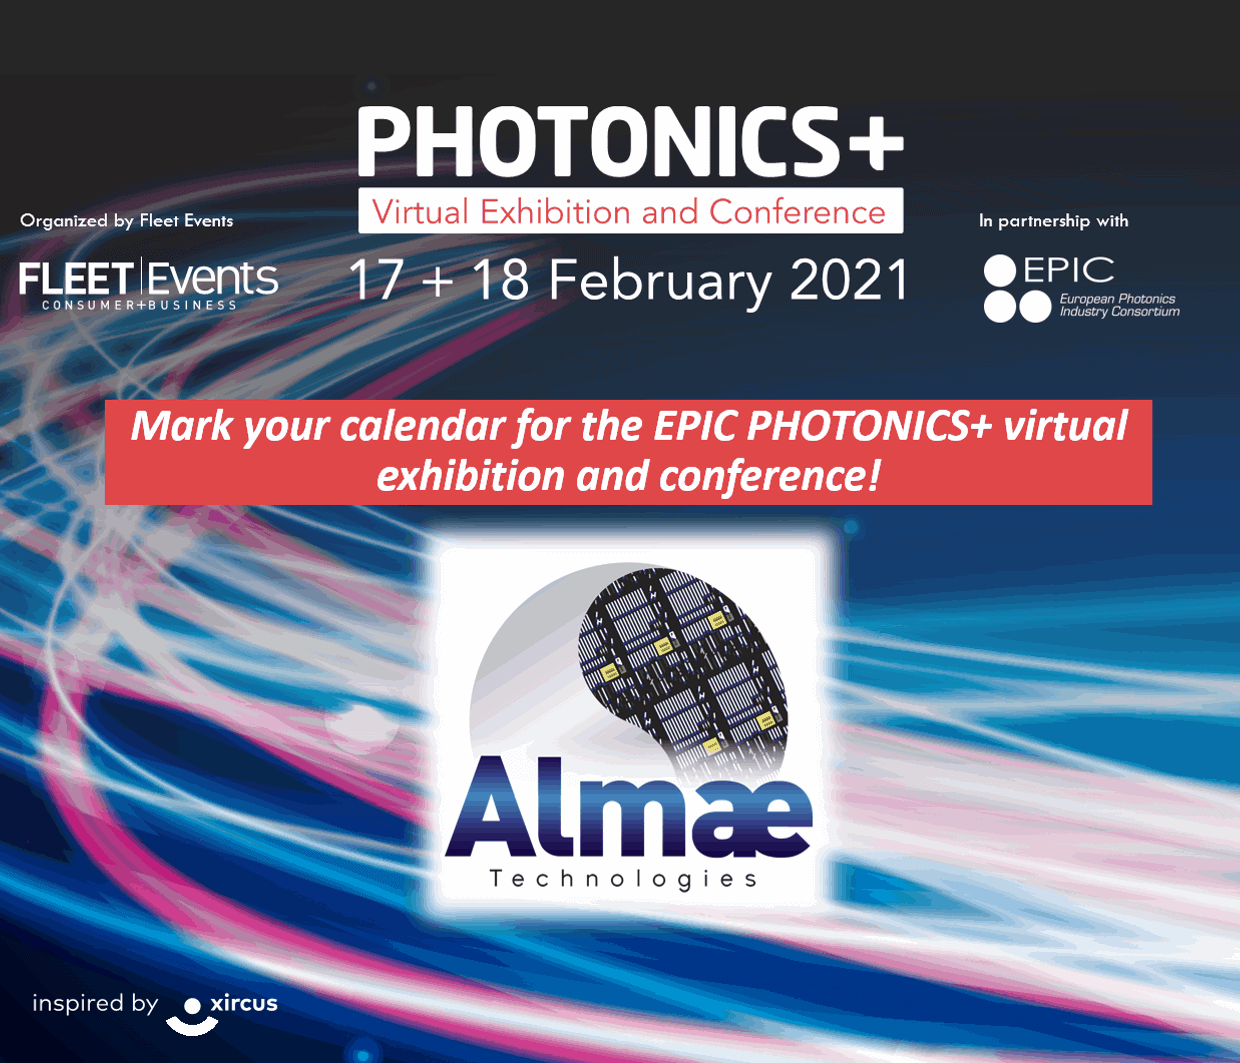 EPIC Photonics+ Virtual Exhibition and Conference 2021